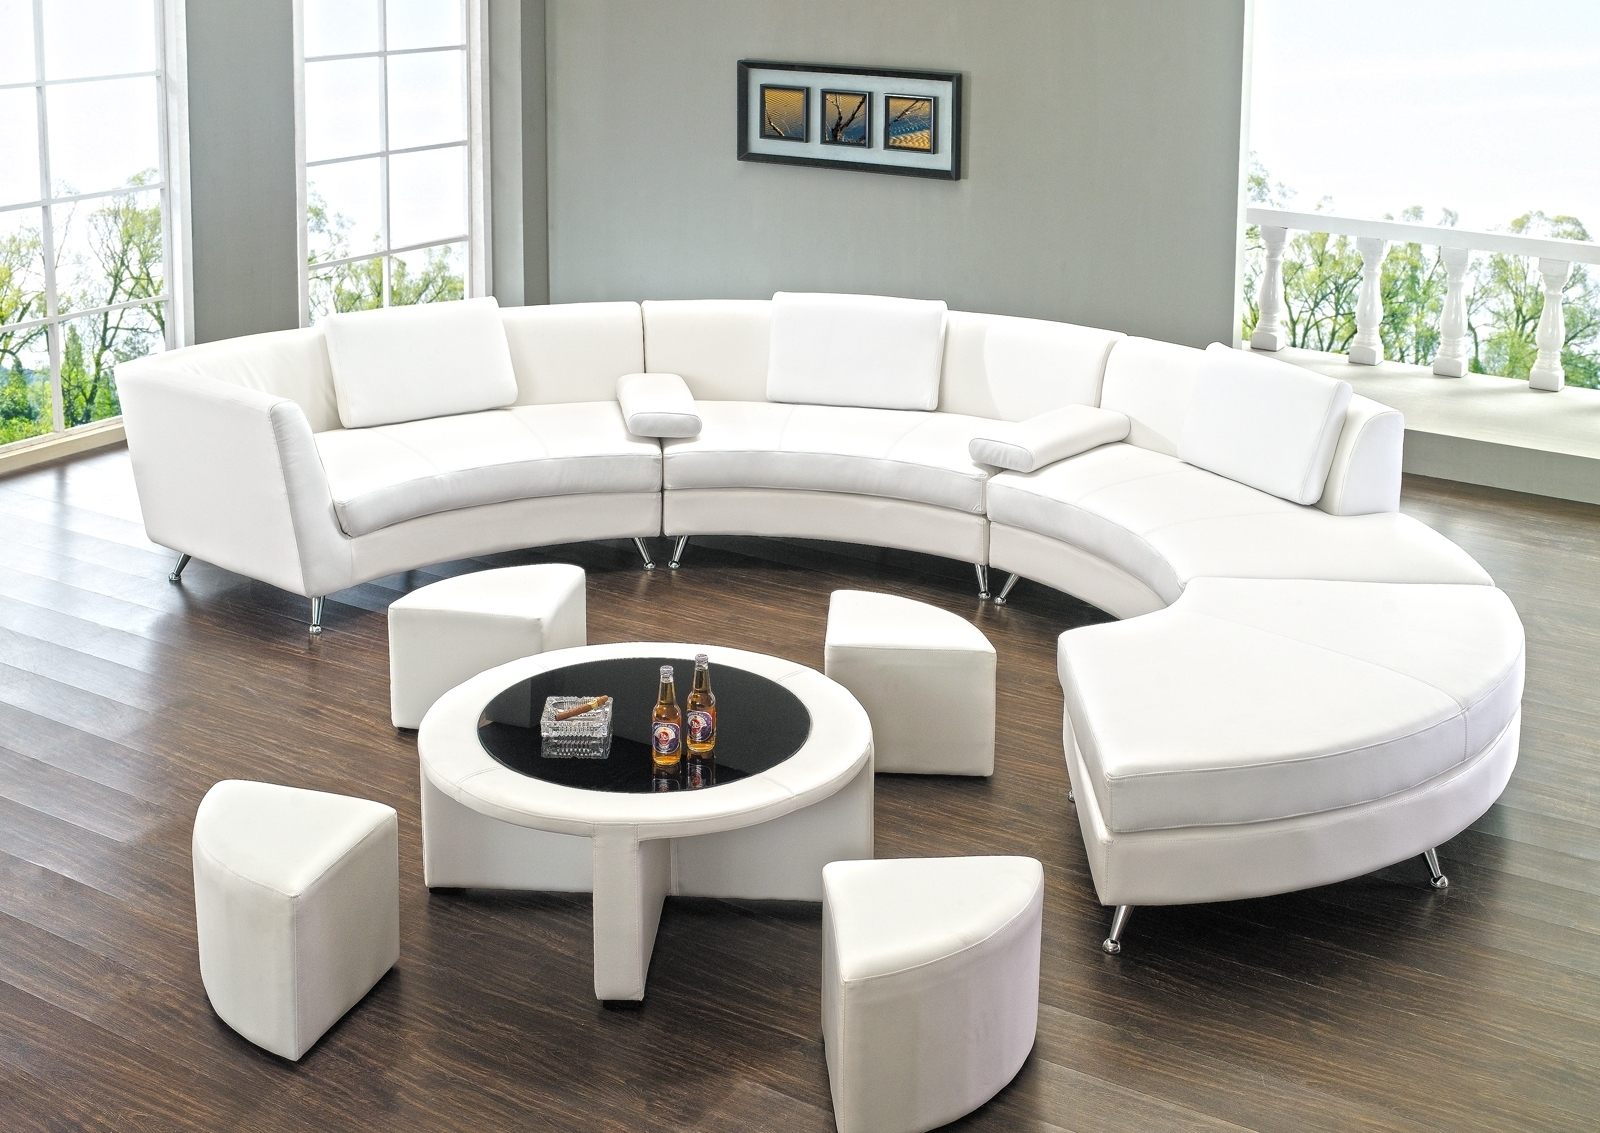 Round Sectional Sofa Has One Of The Best Kind Of Other Is Sectionals Throughout Rounded Sofas (View 7 of 10)